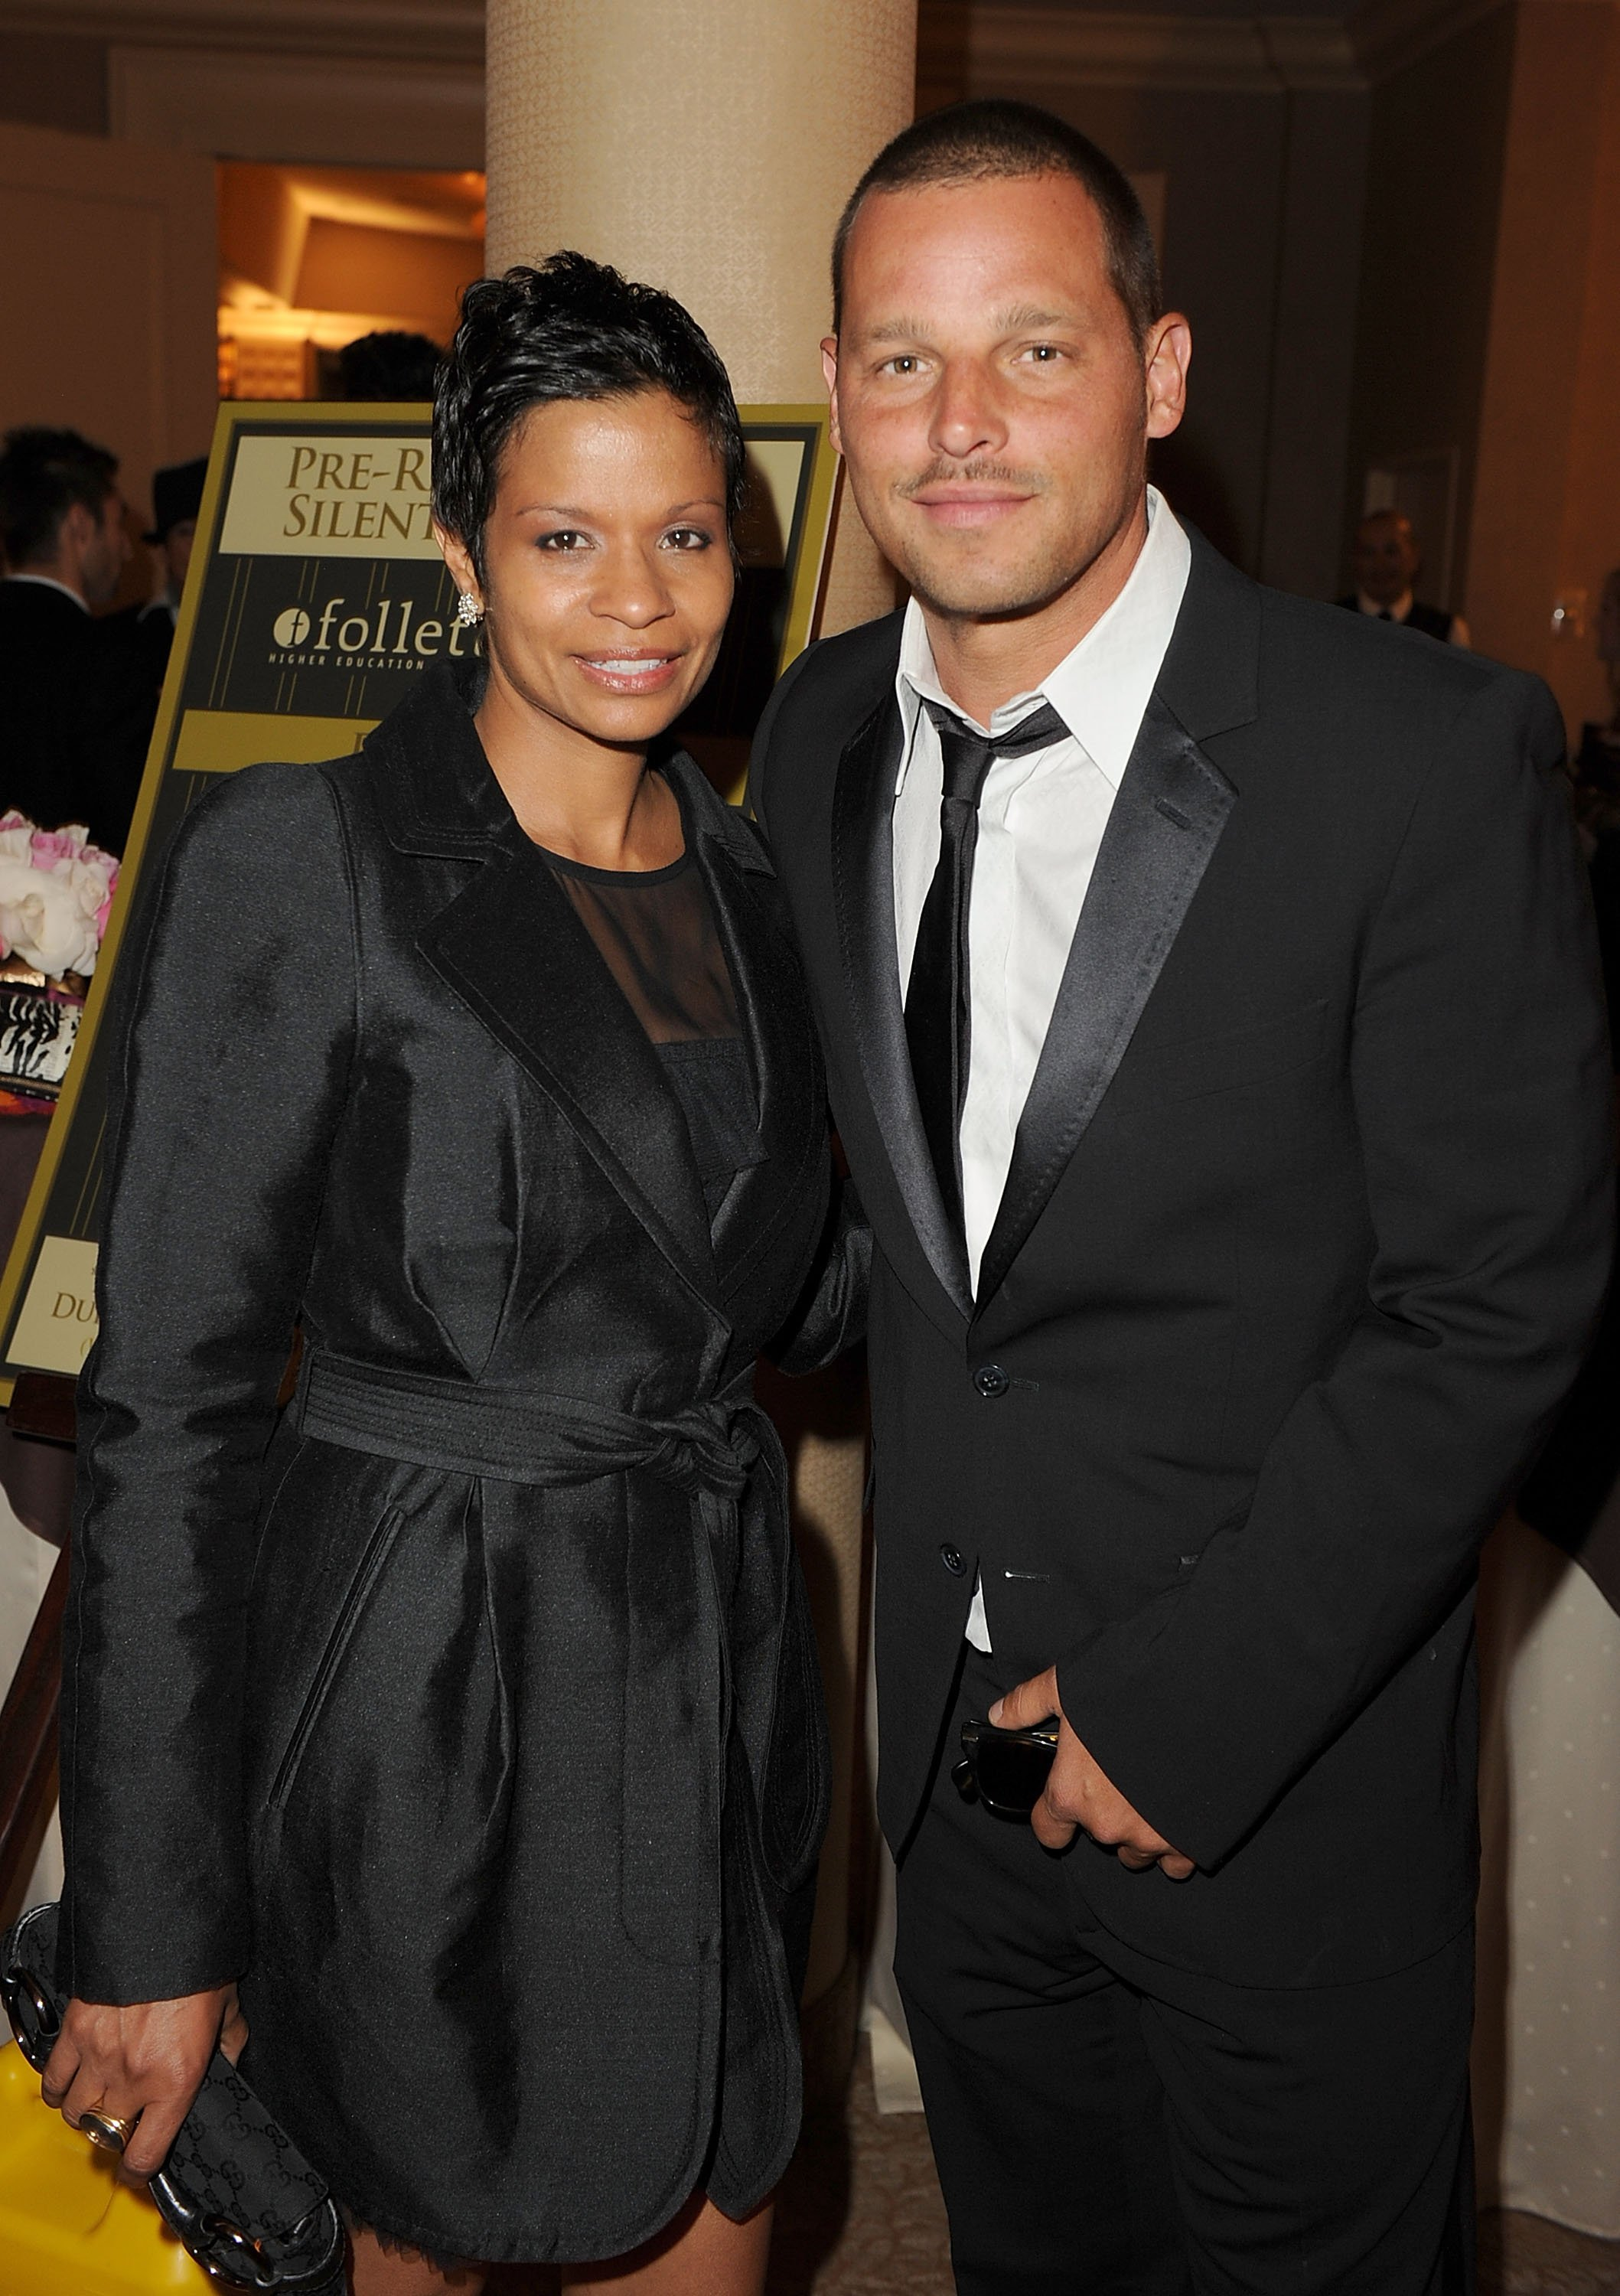 Justin Chambers and his wife Keisha Chambers on June 28, 2011 in Beverly Hills, California | Source: Getty Images/Global Images Ukraine